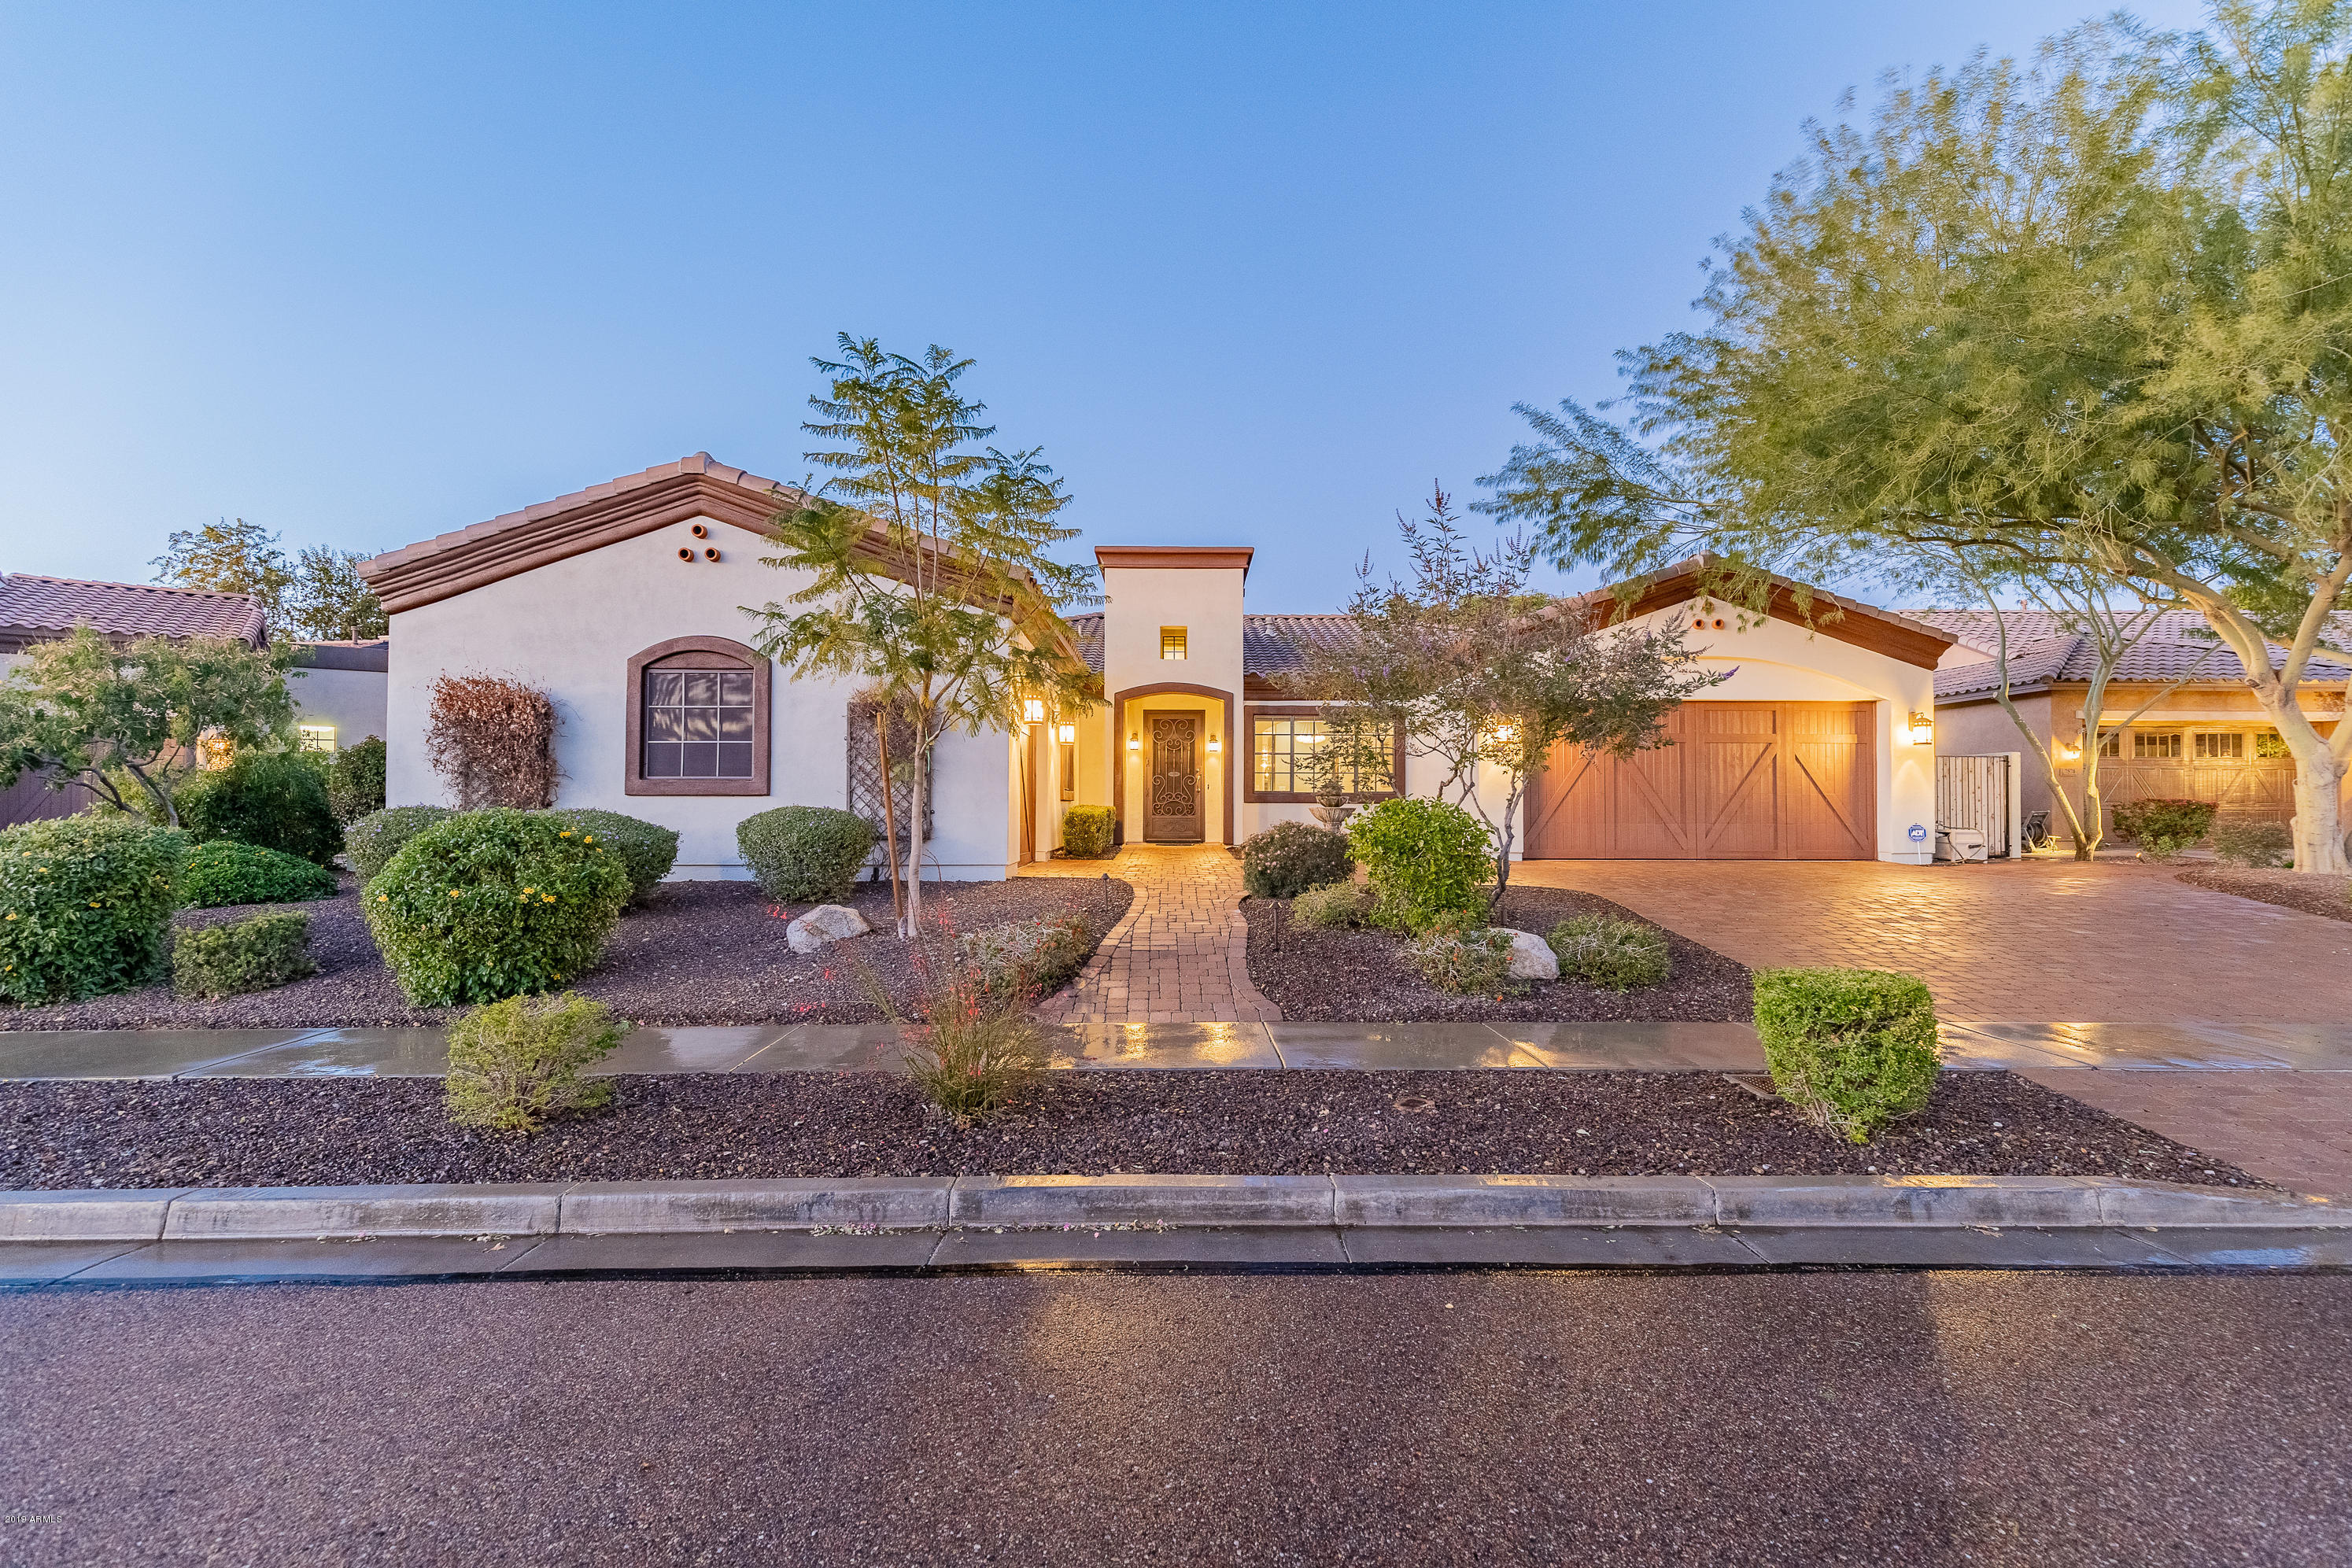 Photo of 7584 W TRAILS Drive, Glendale, AZ 85308